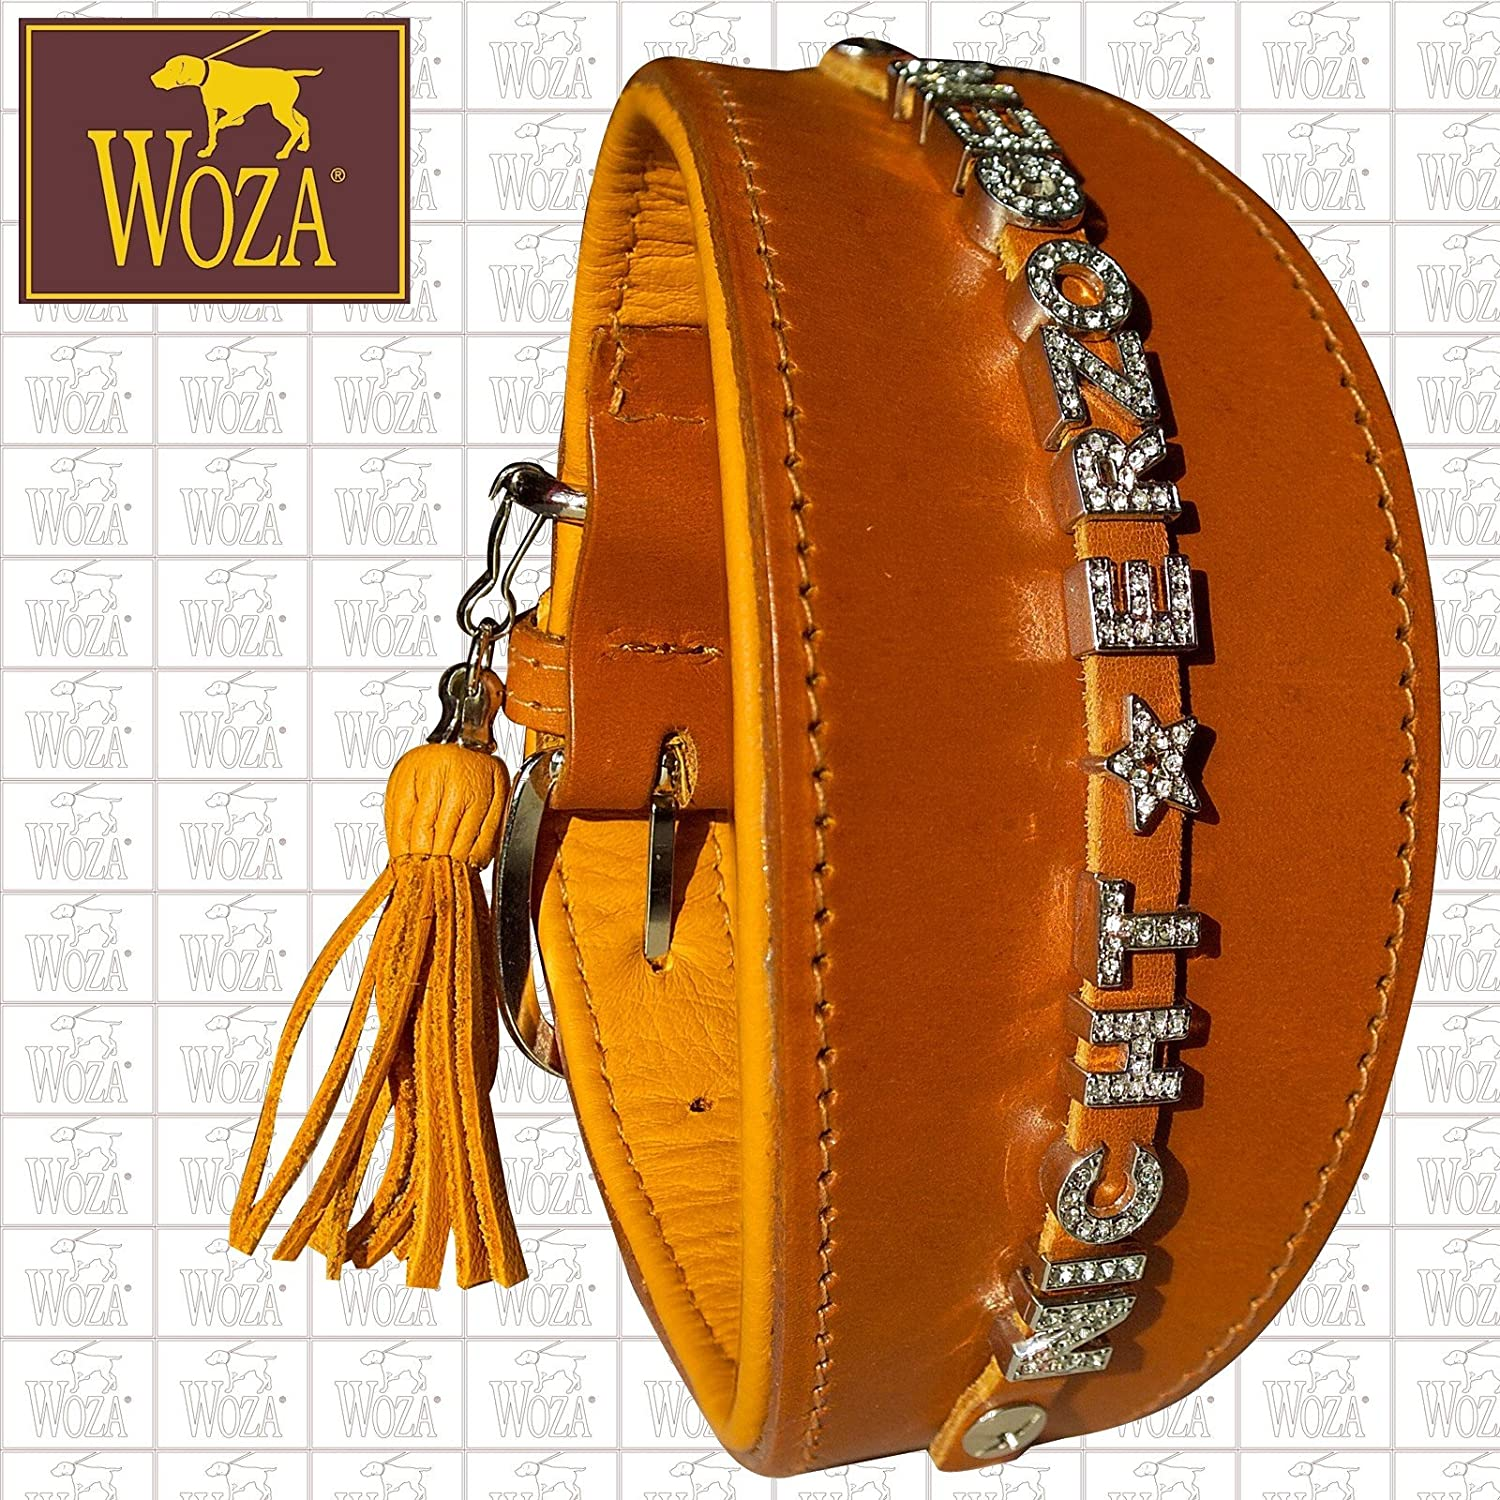 Premium Greyhound Collar 6.8 47 cm Letters Woza Full-Grain Leather Nappa Cowhide Leather Cognac Handmade Greyhound Collar